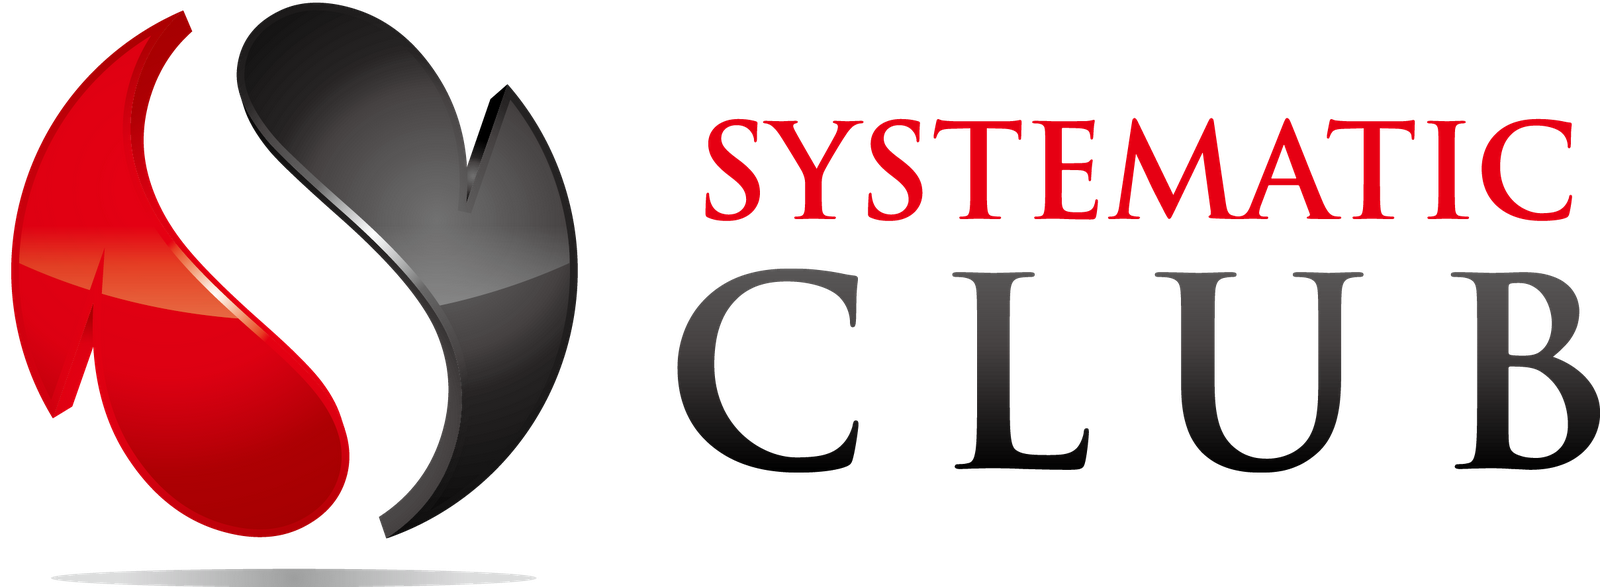 Systematic Club